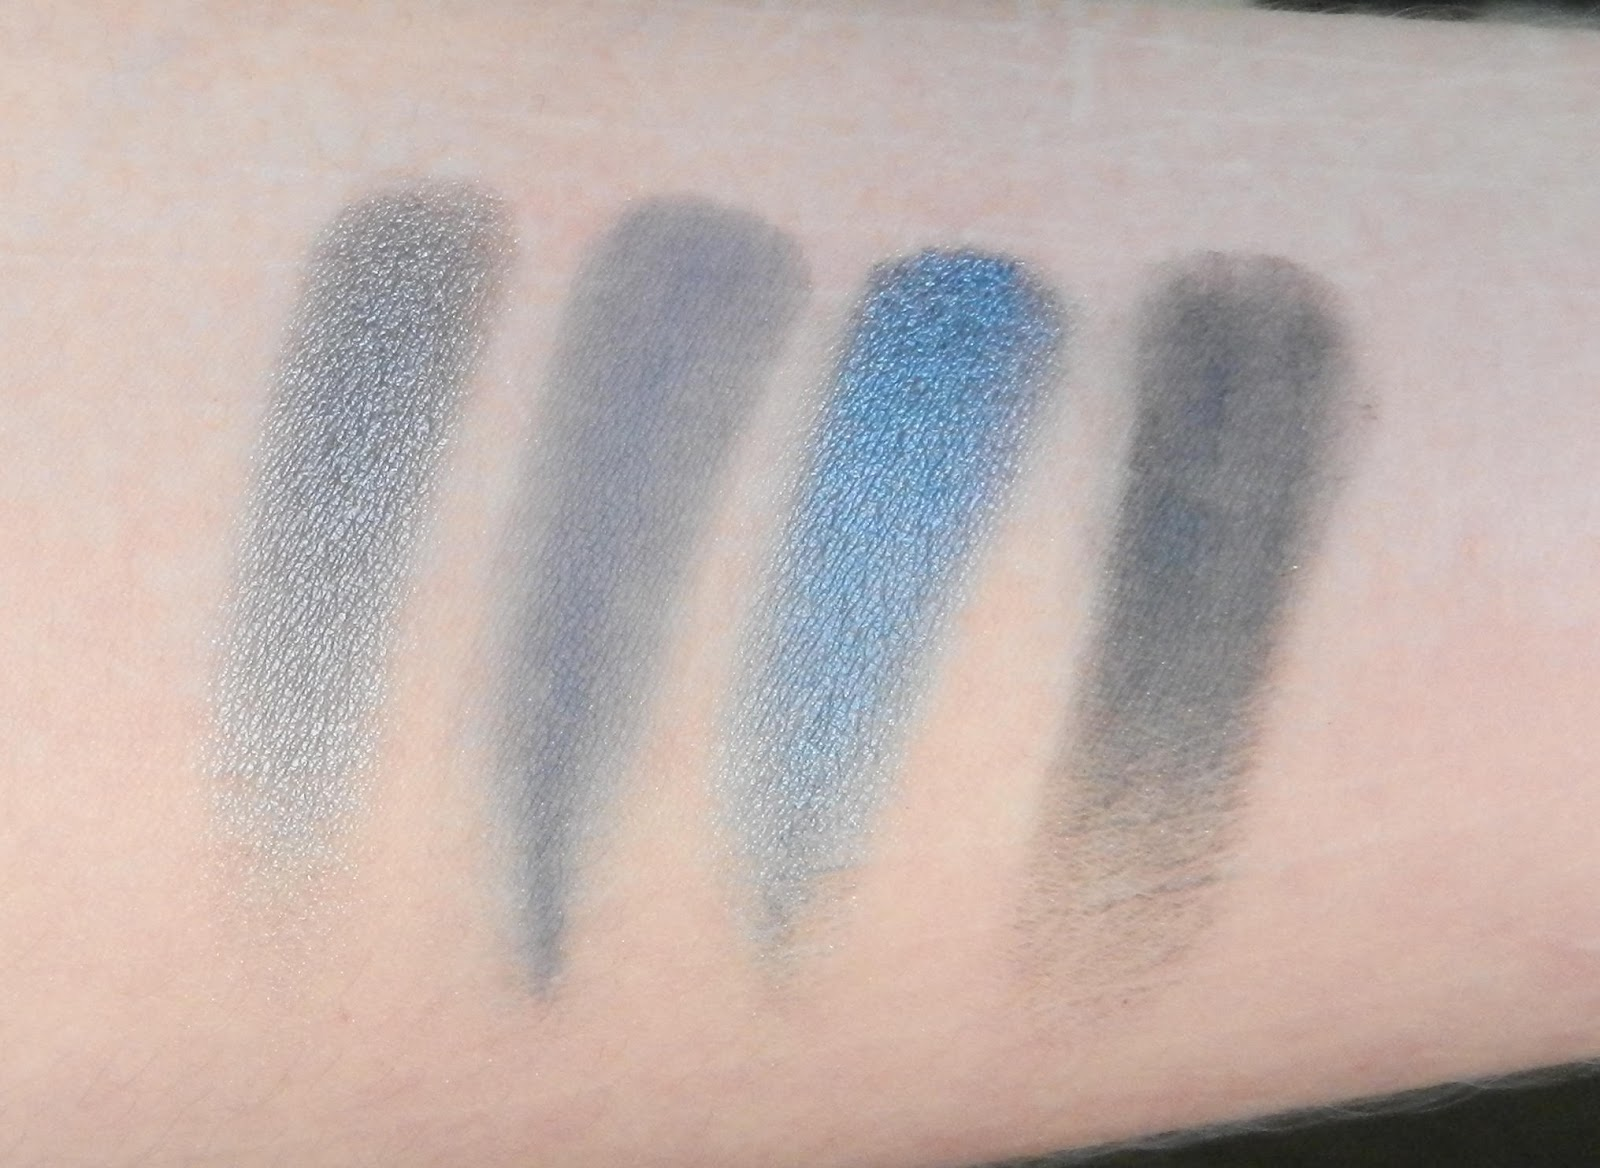 Natasha Denona 28 Blue Swatches 09M Quick Silver, 11V Steel Blue, 11M Metallic Steel Blue, 65V Smoke